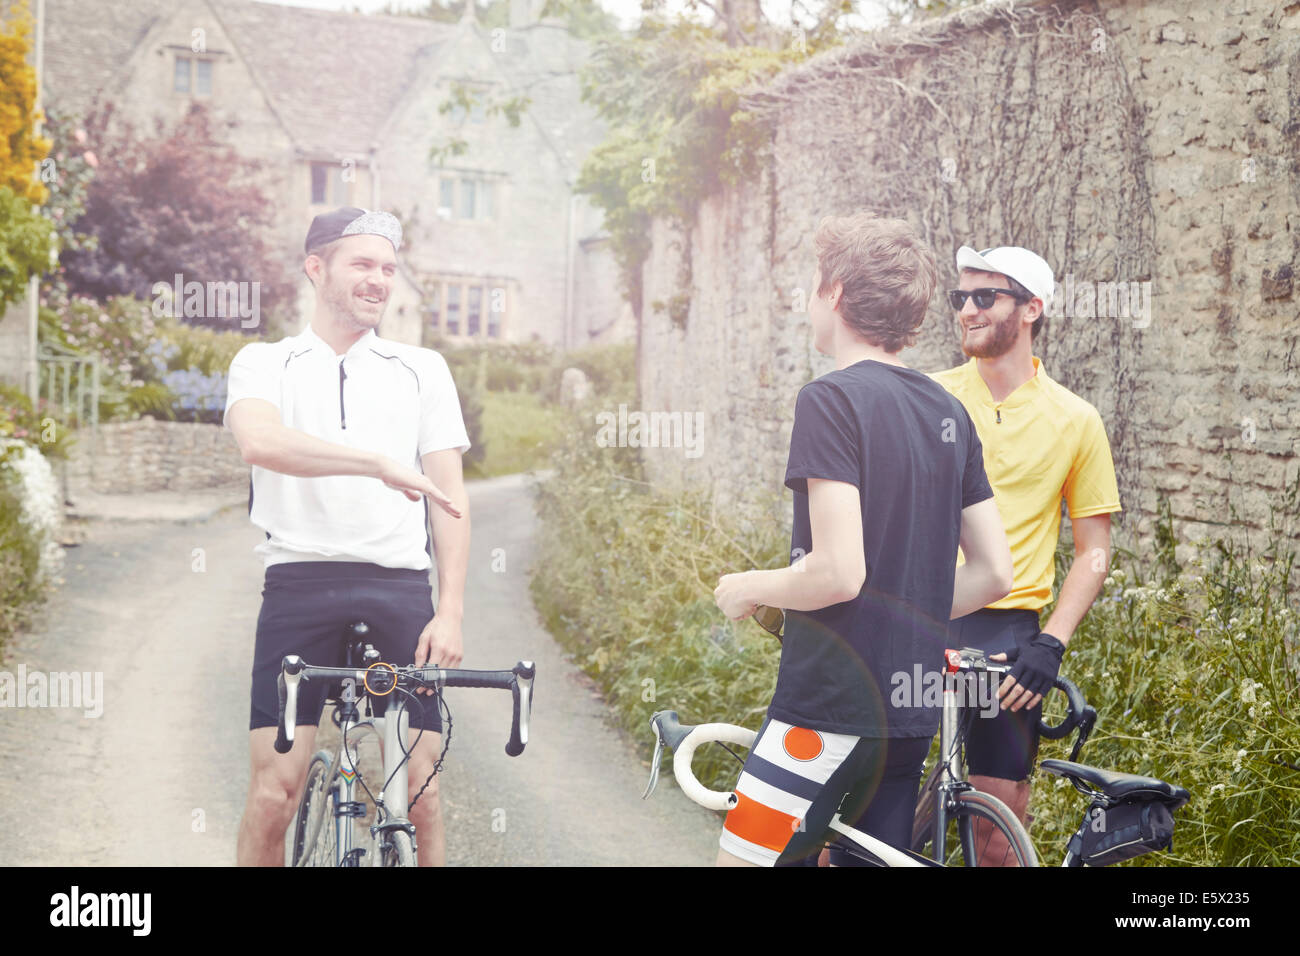 Cyclists stopping by stone wall, Cotswolds, UK - Stock Image